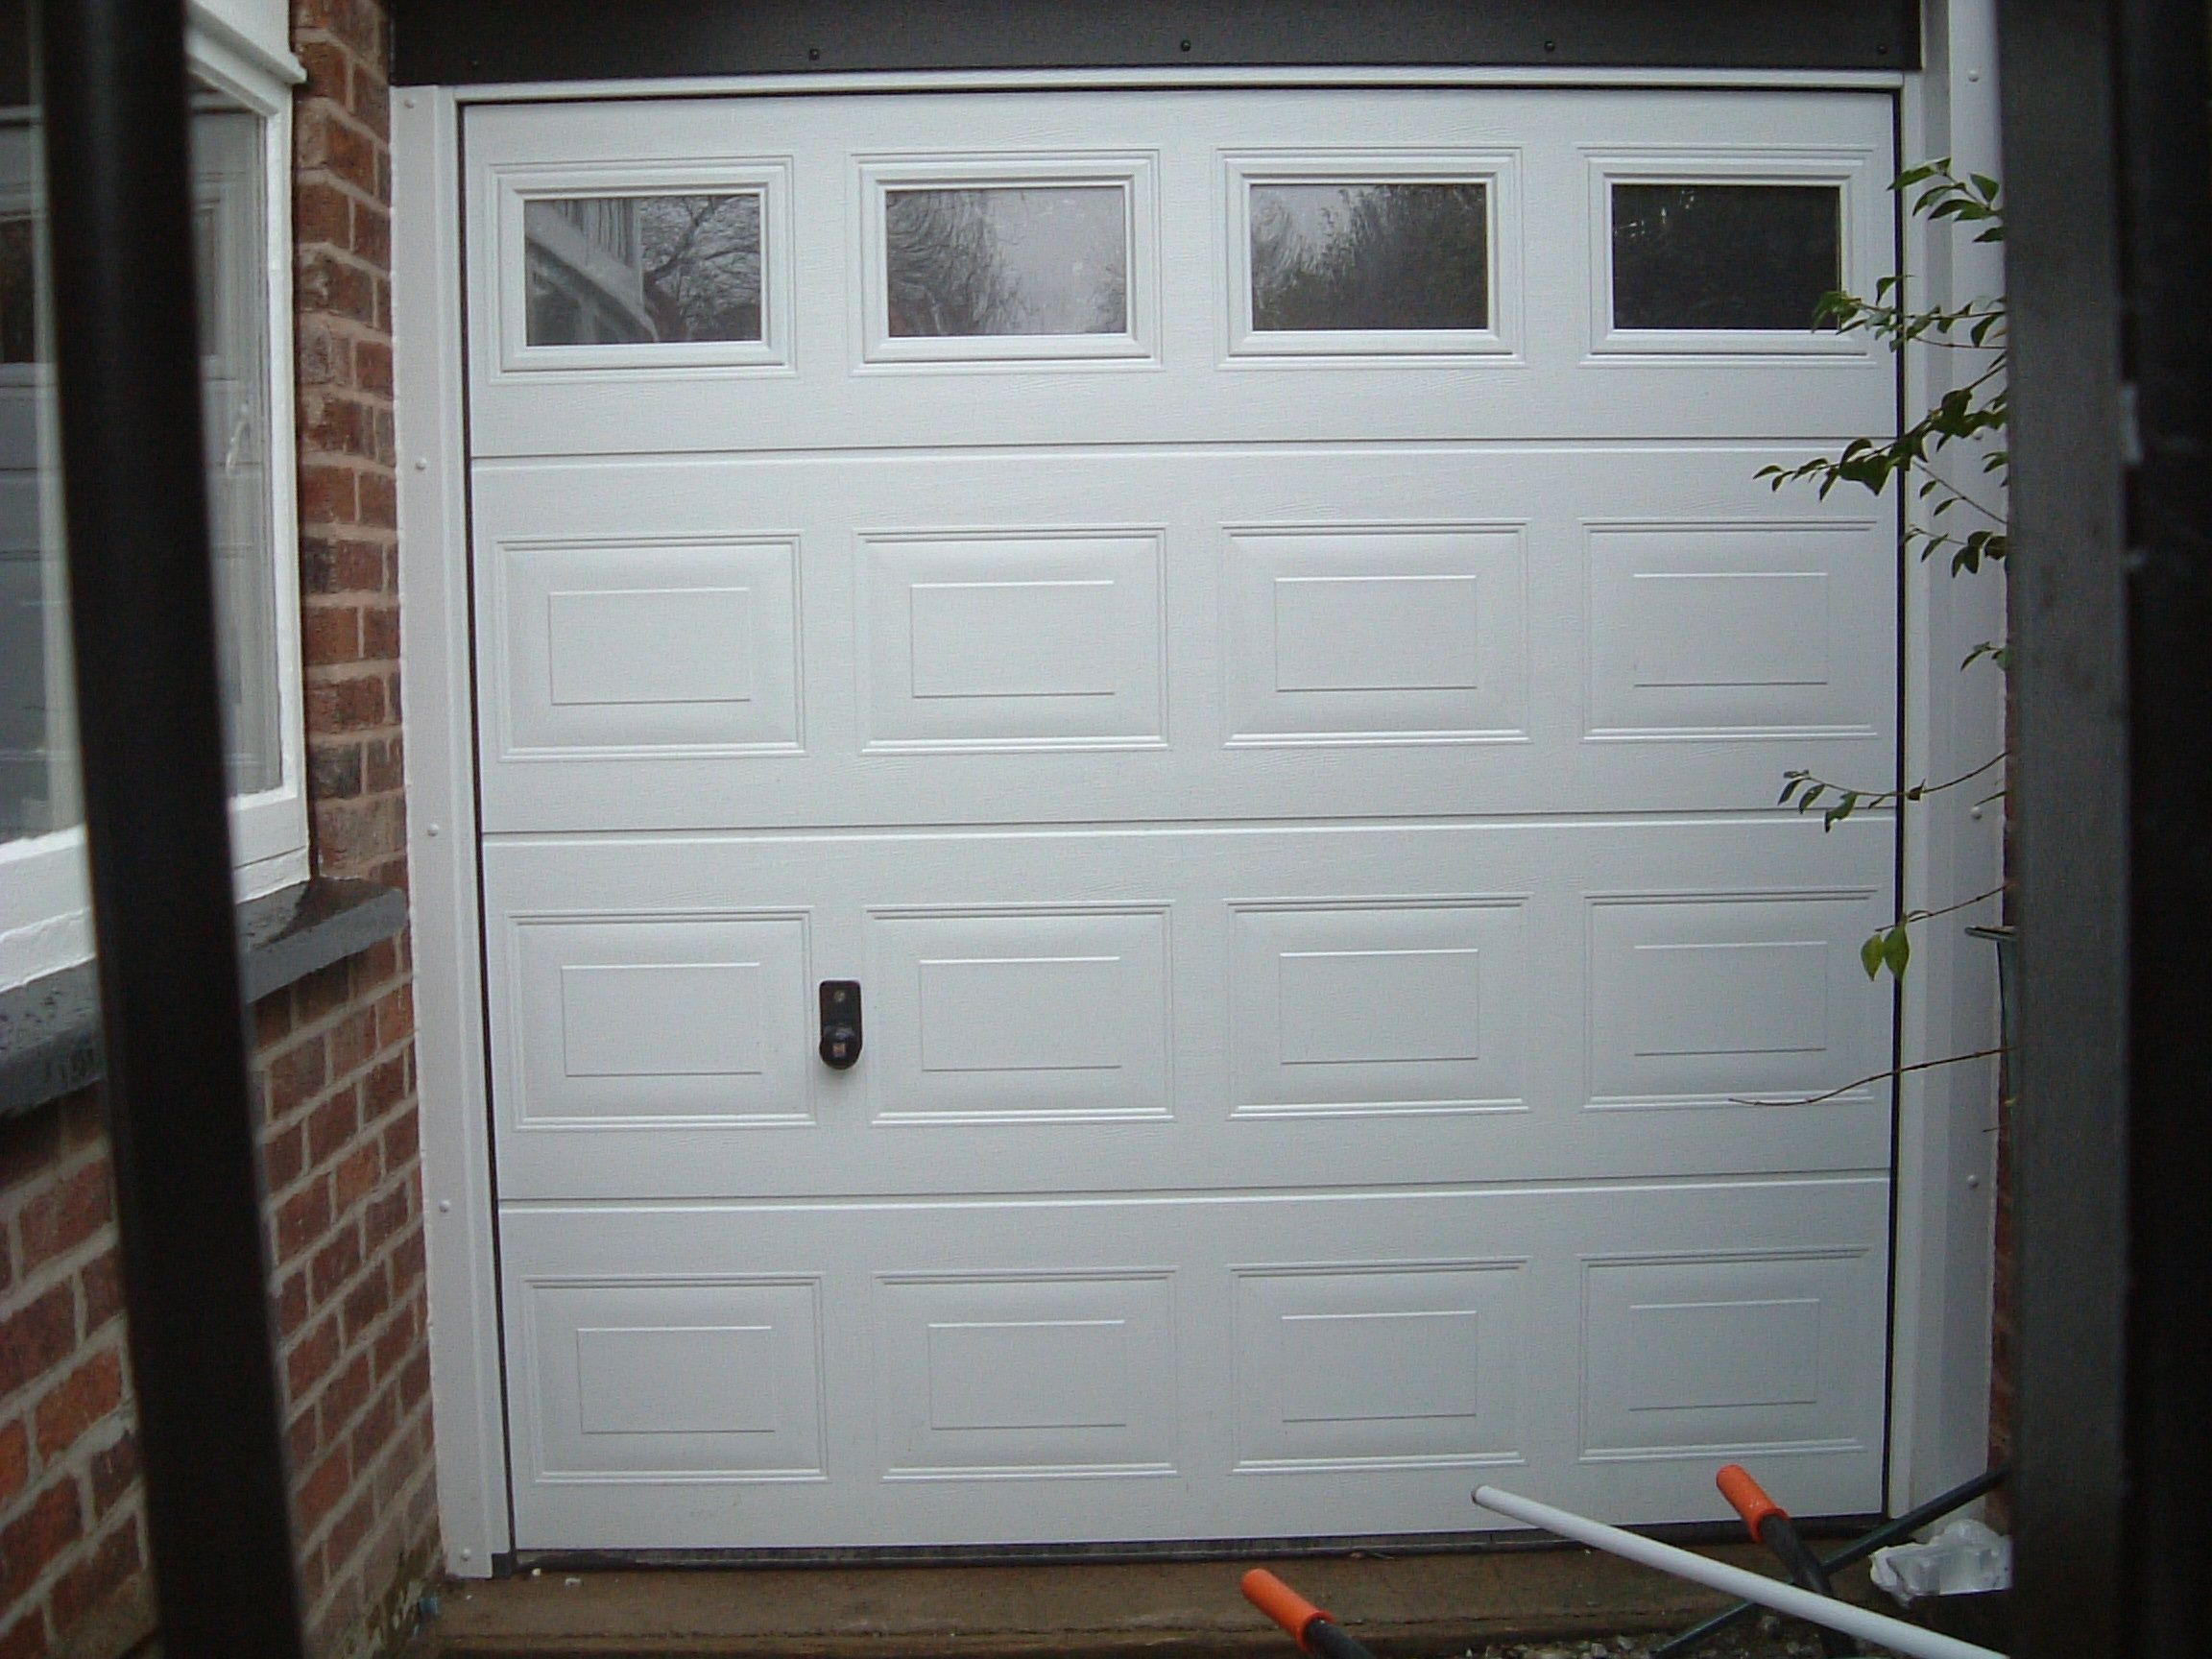 The Most Incredible along with Gorgeous Insulated Sectional Garage